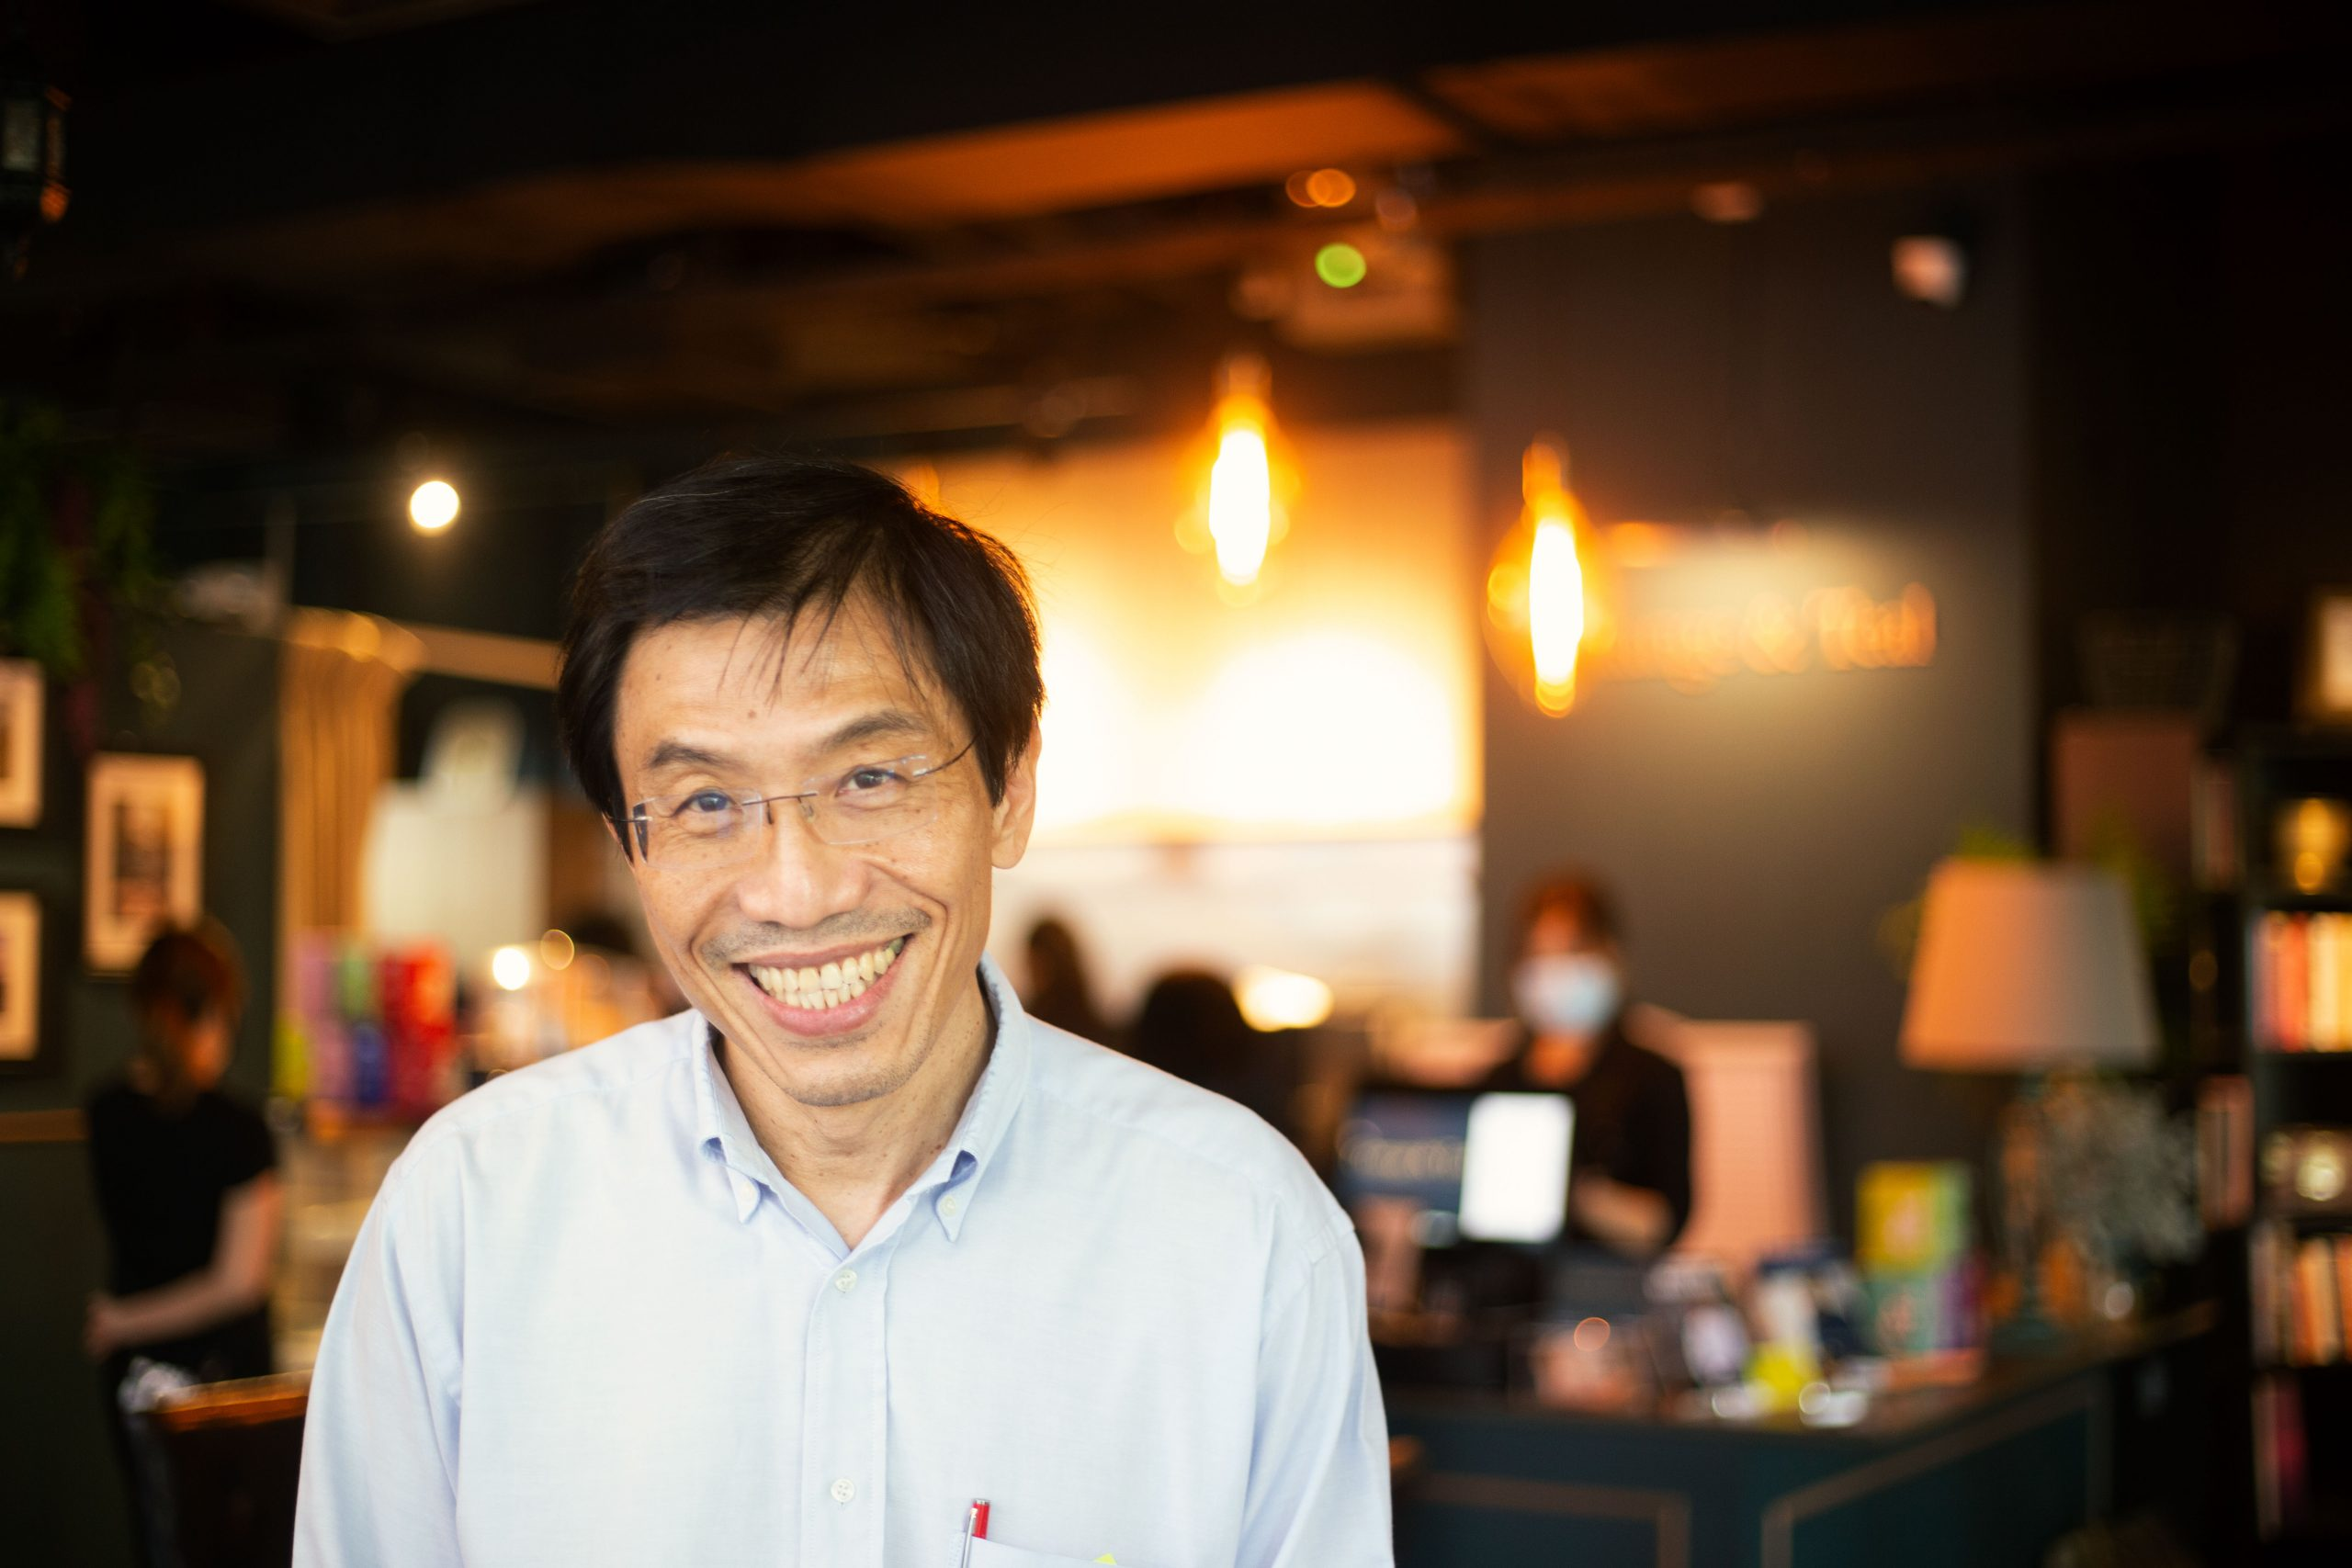 Put Politics Aside And Bond Over Food: Can Chee Soon Juan Make This A Reality For His Cafe?